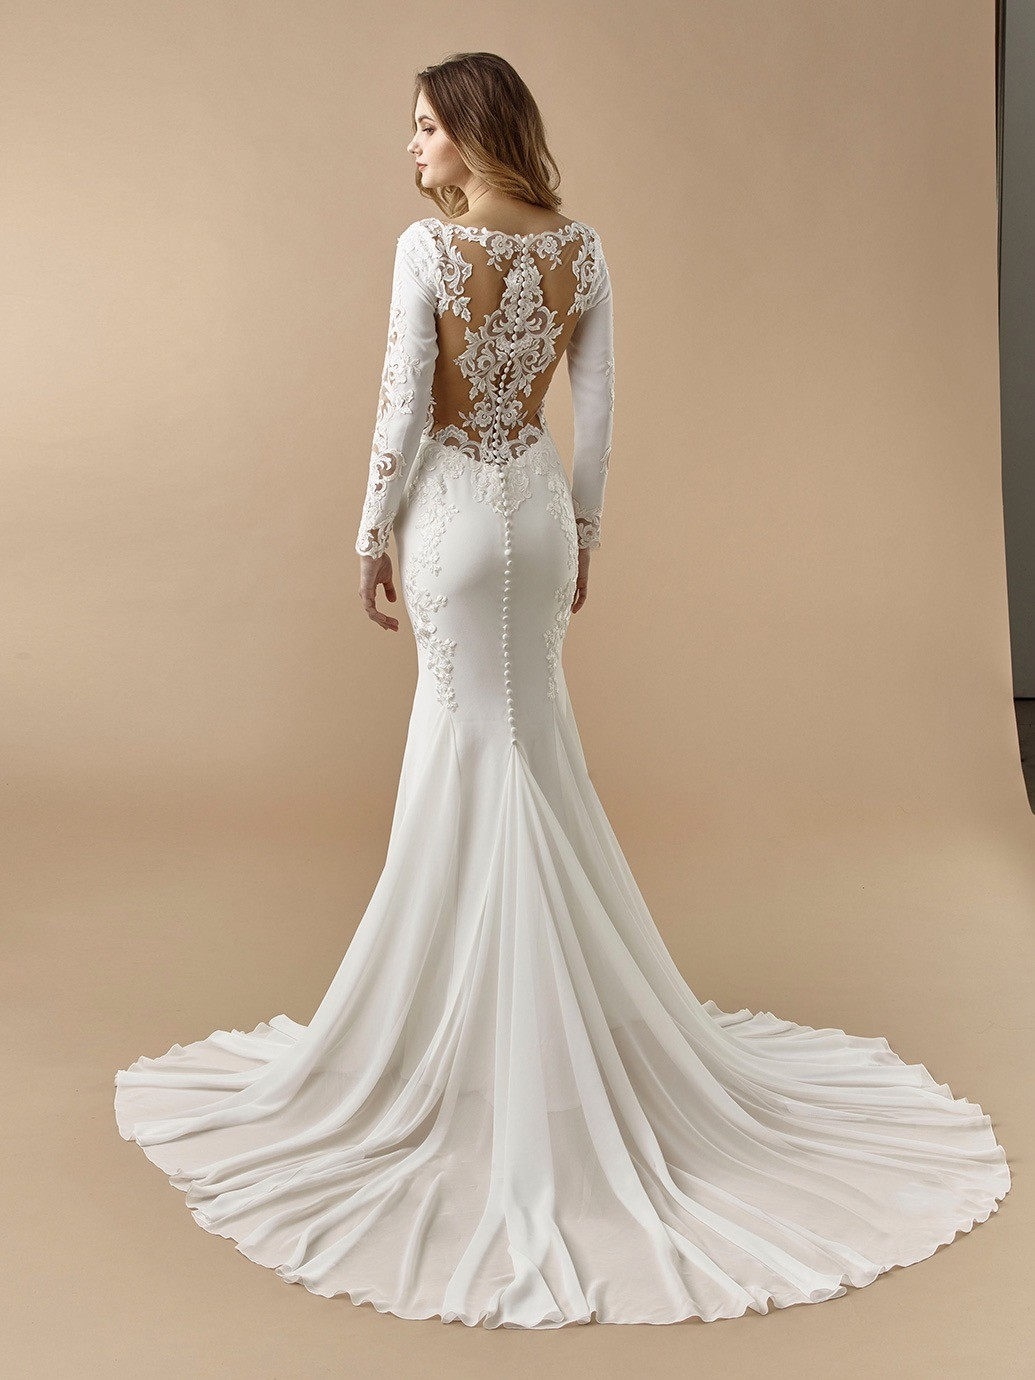 Brautkleid Modell BT20-11 aus der Beautiful Bridal Kollektion 2020